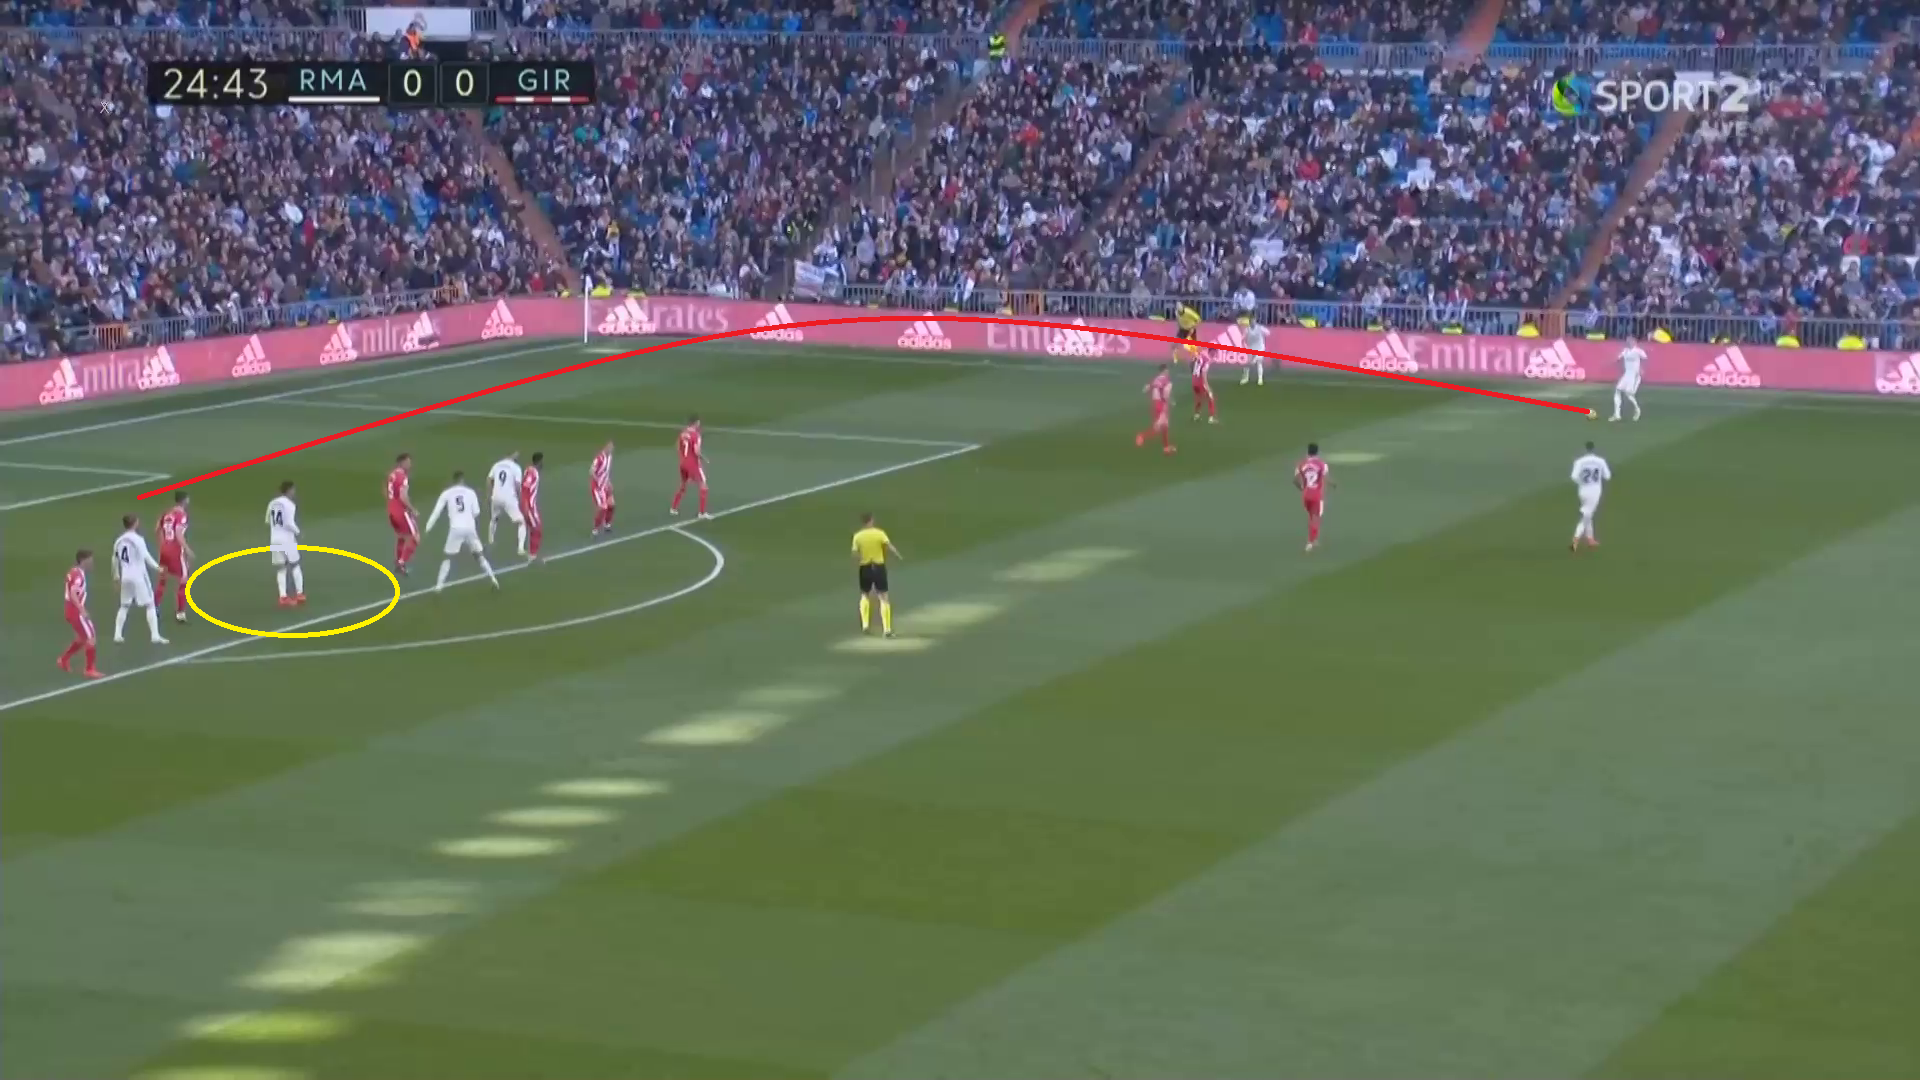 Real Madrid Girona La Liga Tactical Analysis Statistics